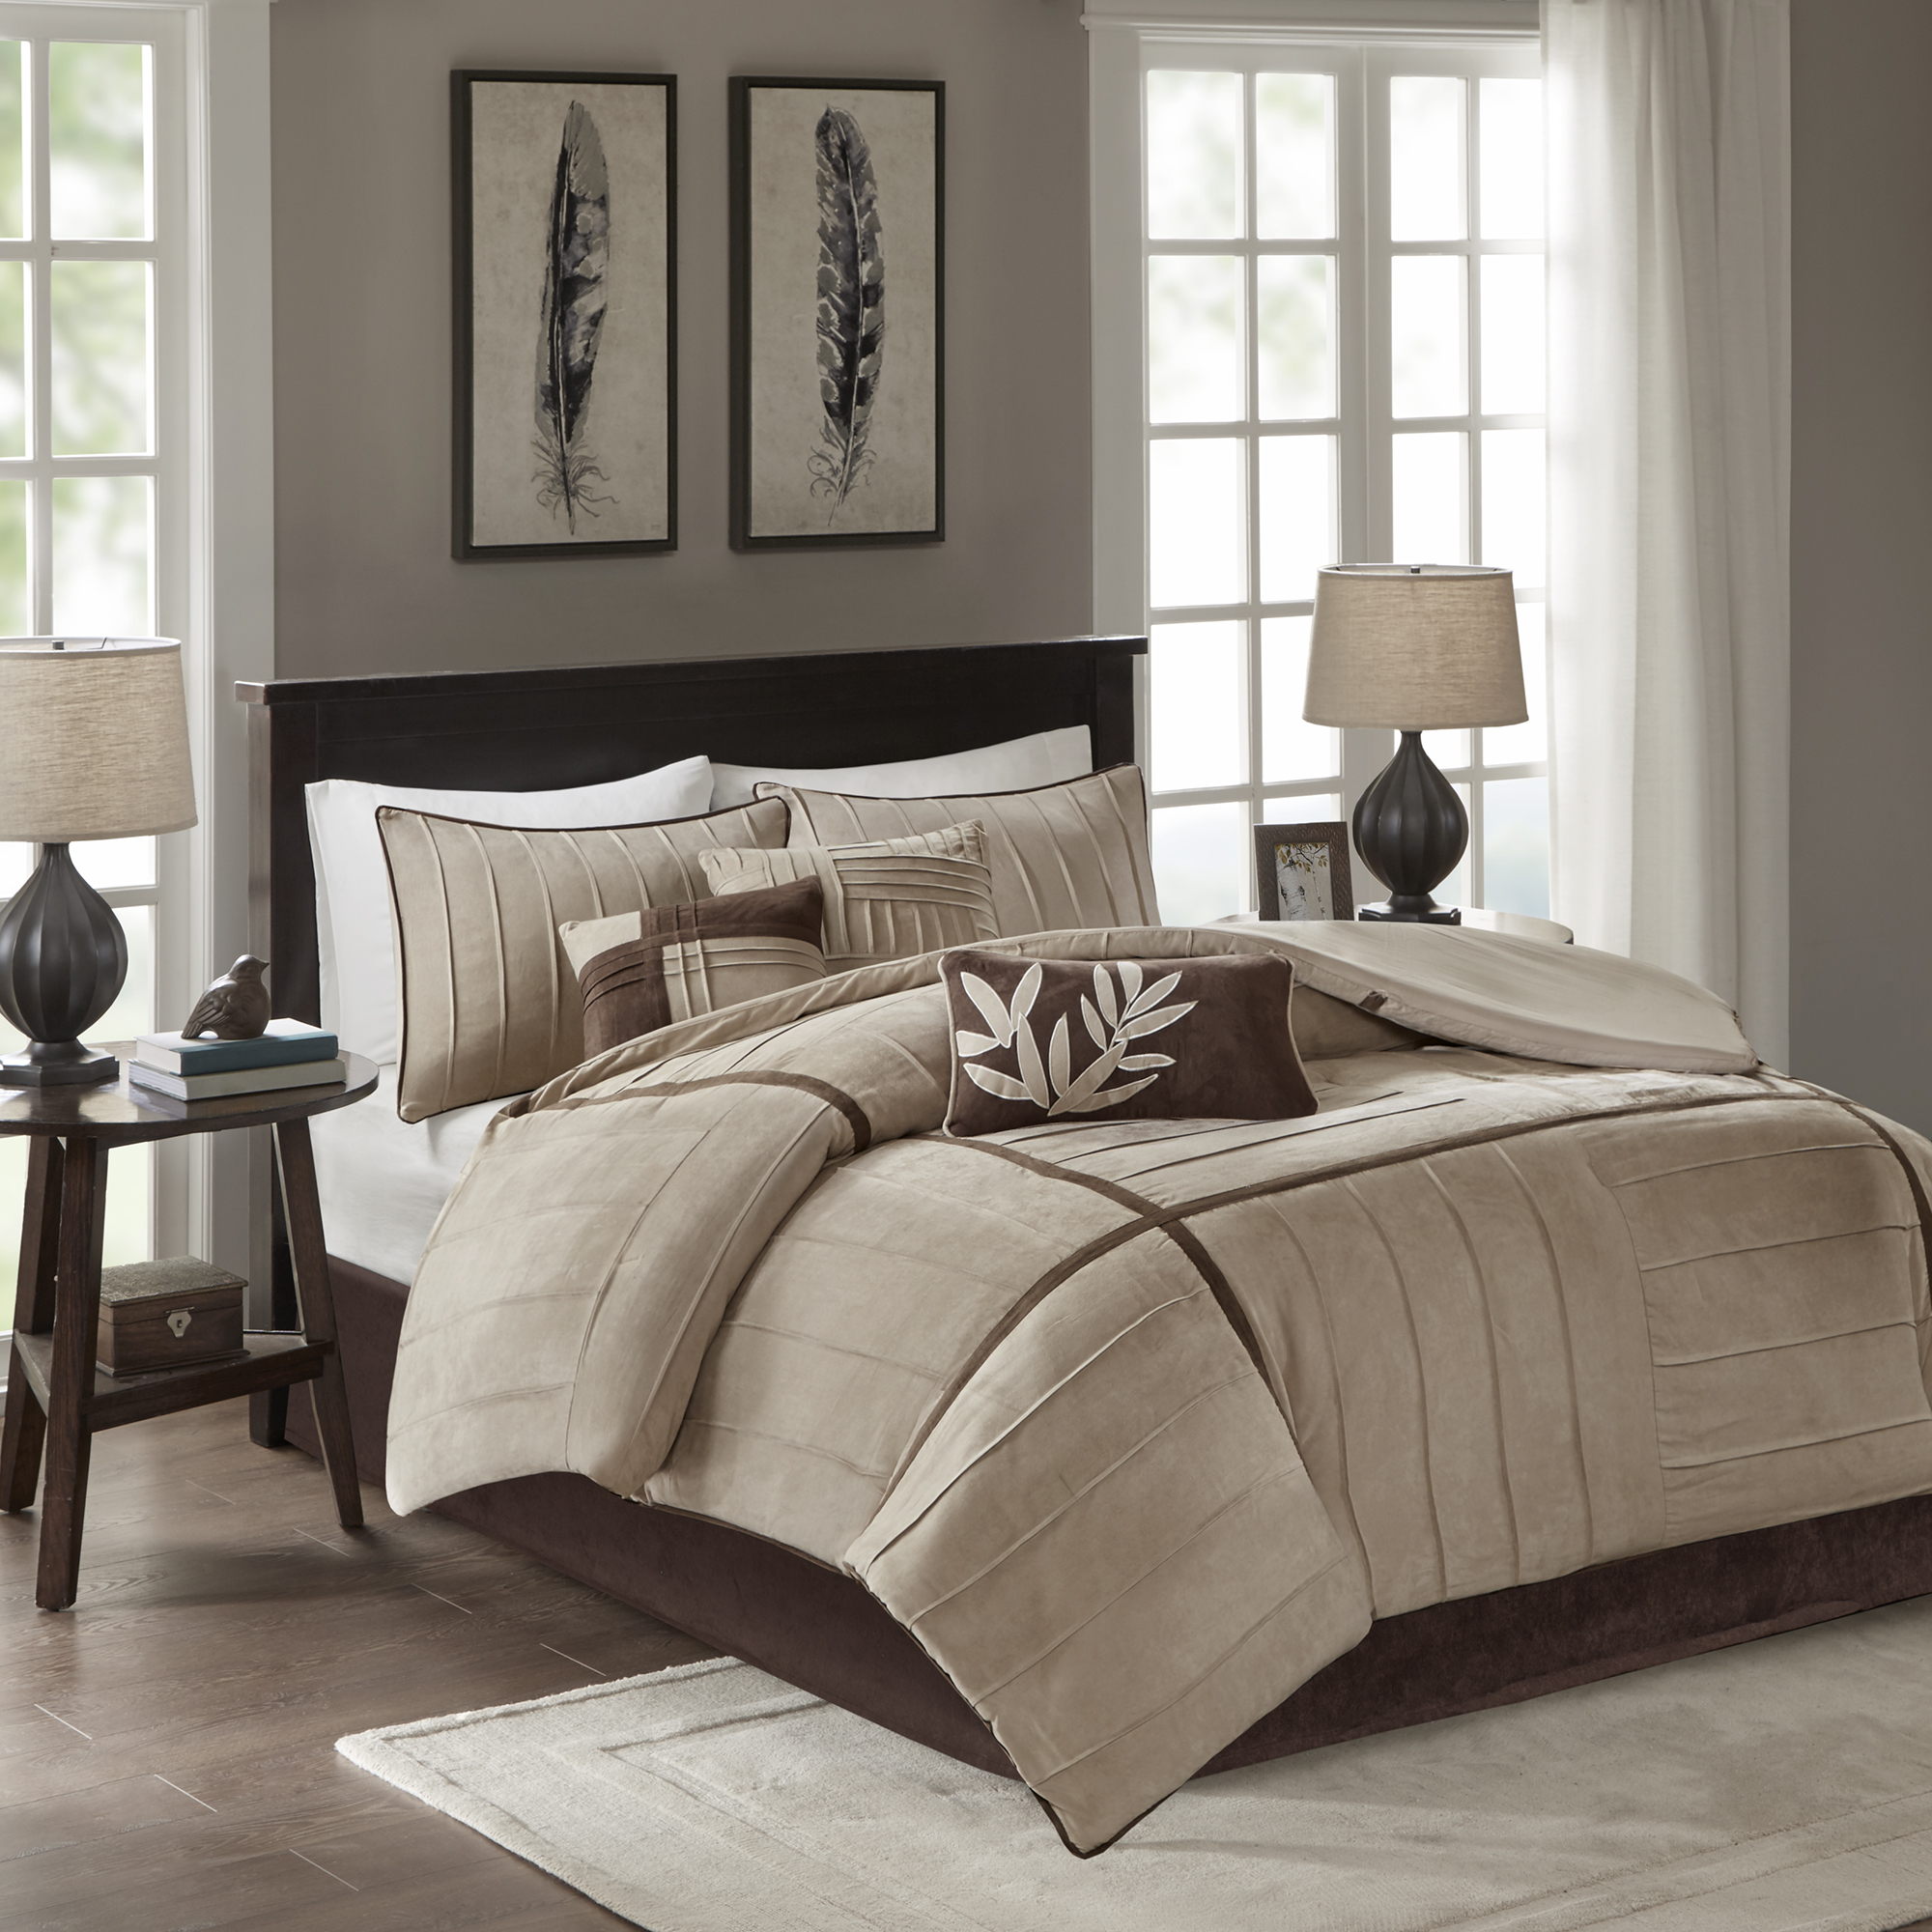 Home Essence Connell 7 Piece Comforter Set